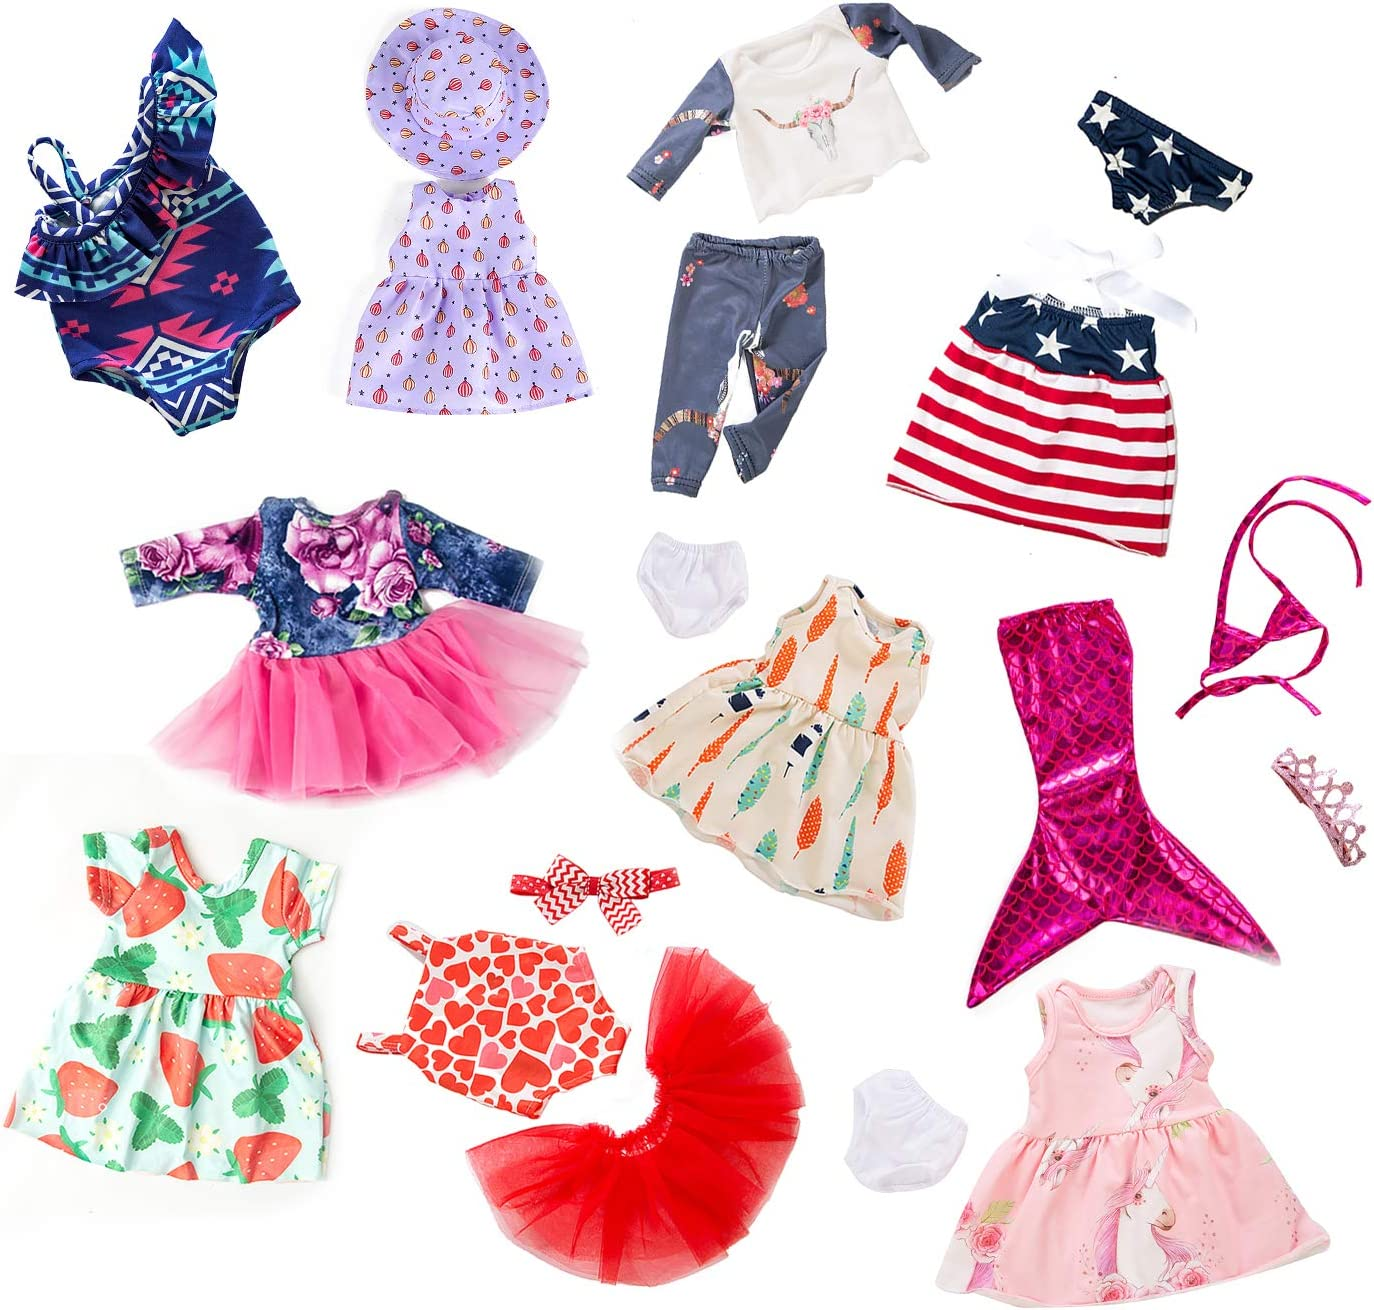 ZITA ELEMENT 10PCS 18 inch Doll Clothes and Accessories for American 18 inch Girl Doll,Dresses,T-Shirts,Pants,Swimsuit,Jumpsuit,Hair Bands and Hair Clips for 16-18 Inch Girl Doll Clothes